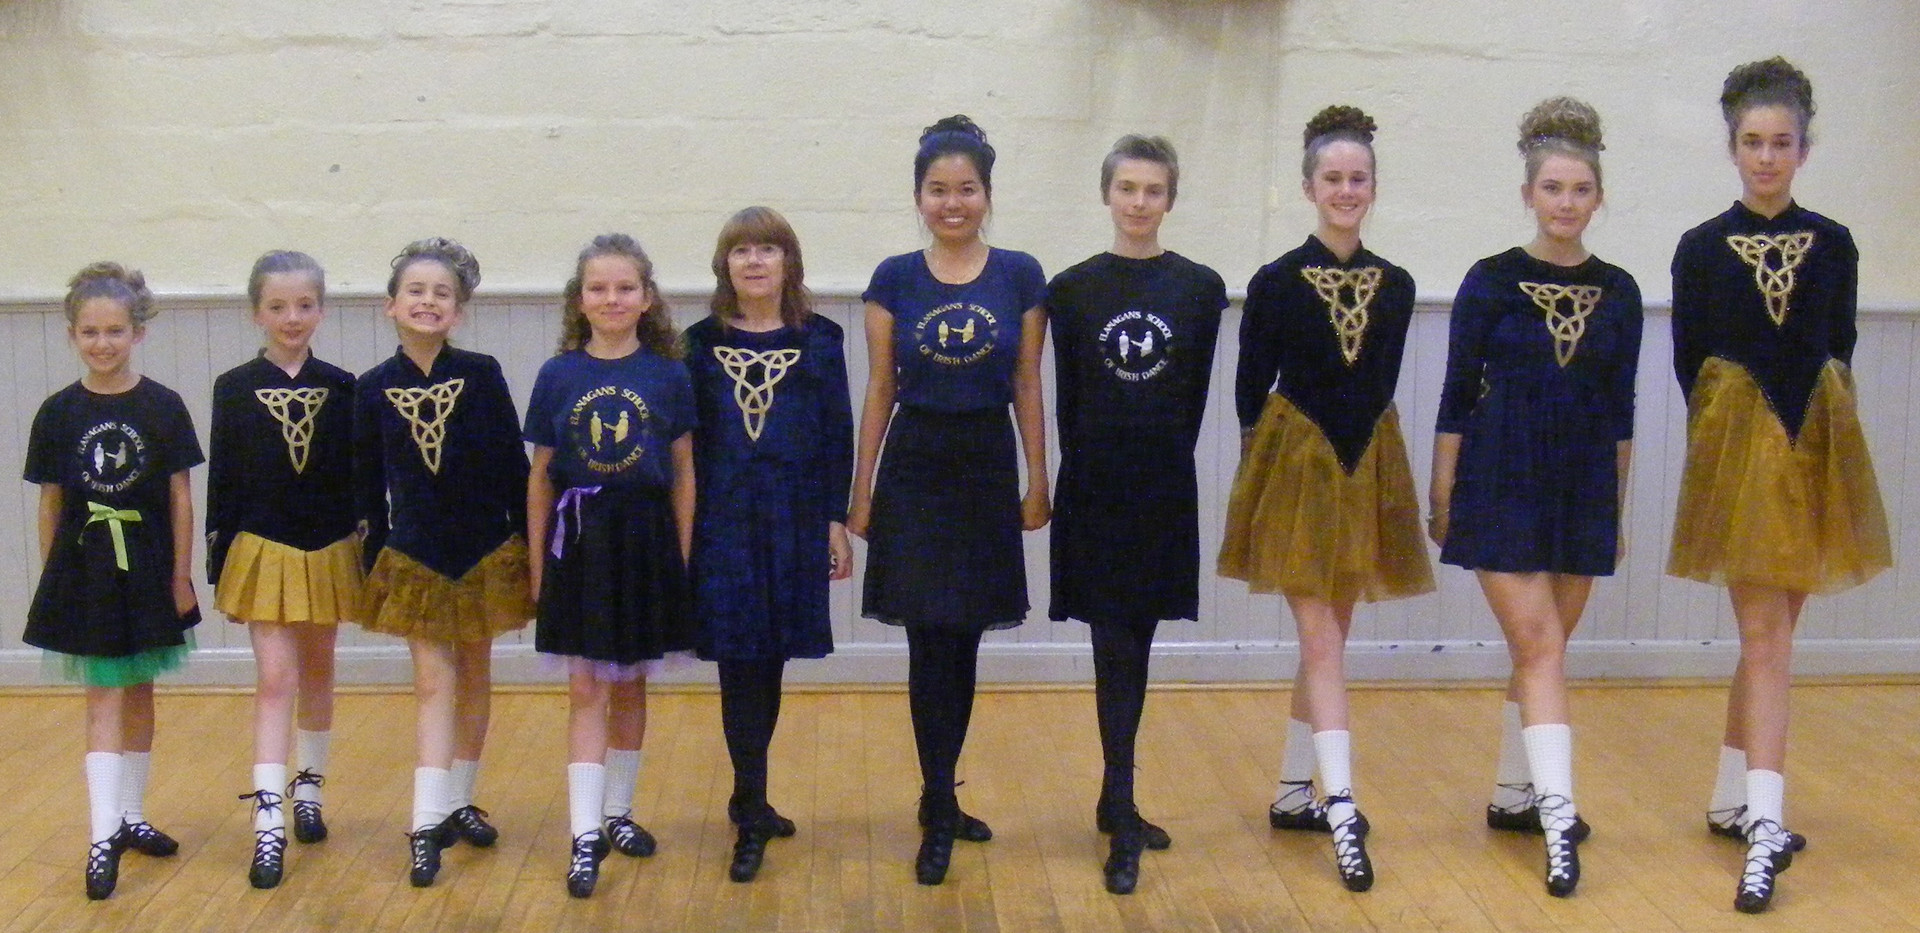 Flanagans's school of Irish dance